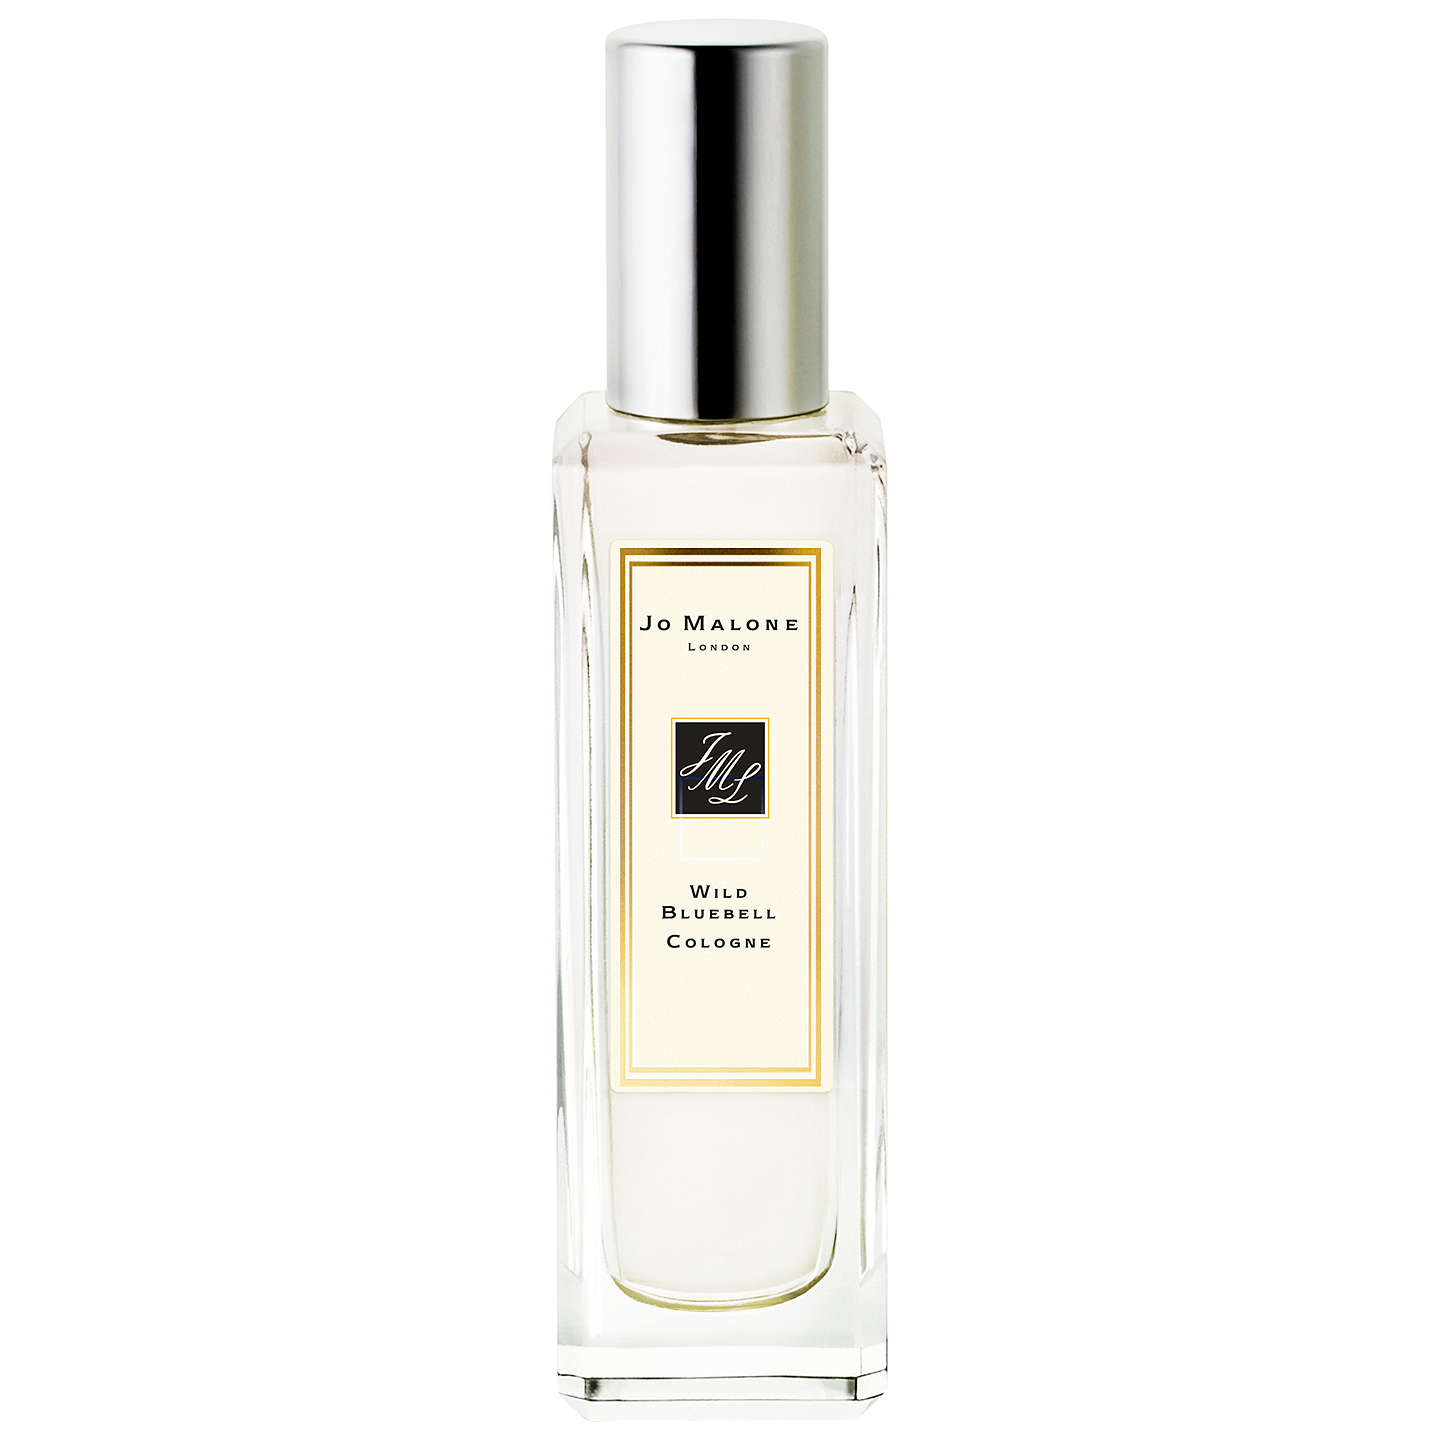 BuyJo Malone London Wild Bluebell Cologne, 30ml Online at johnlewis.com